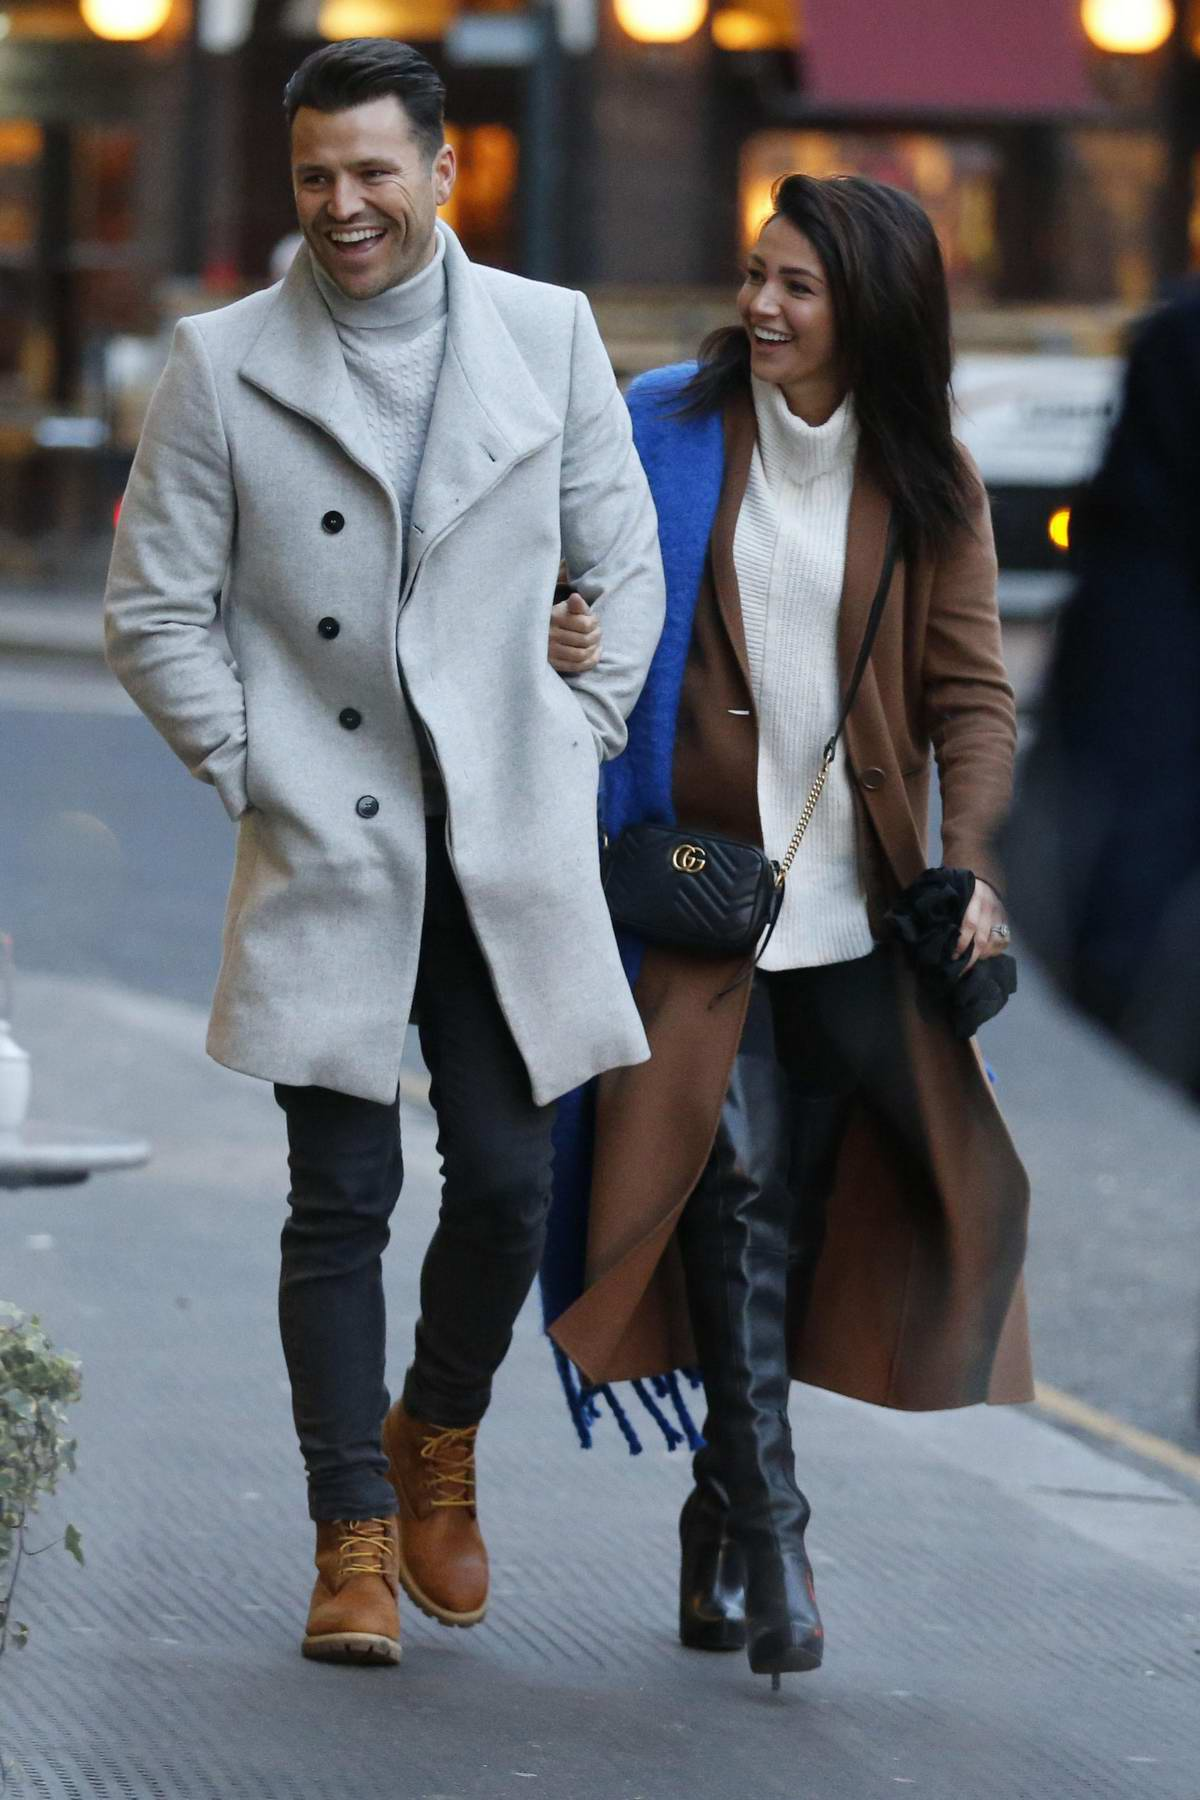 Michelle Keegan and Mark Wright out for some Christmas shopping in London